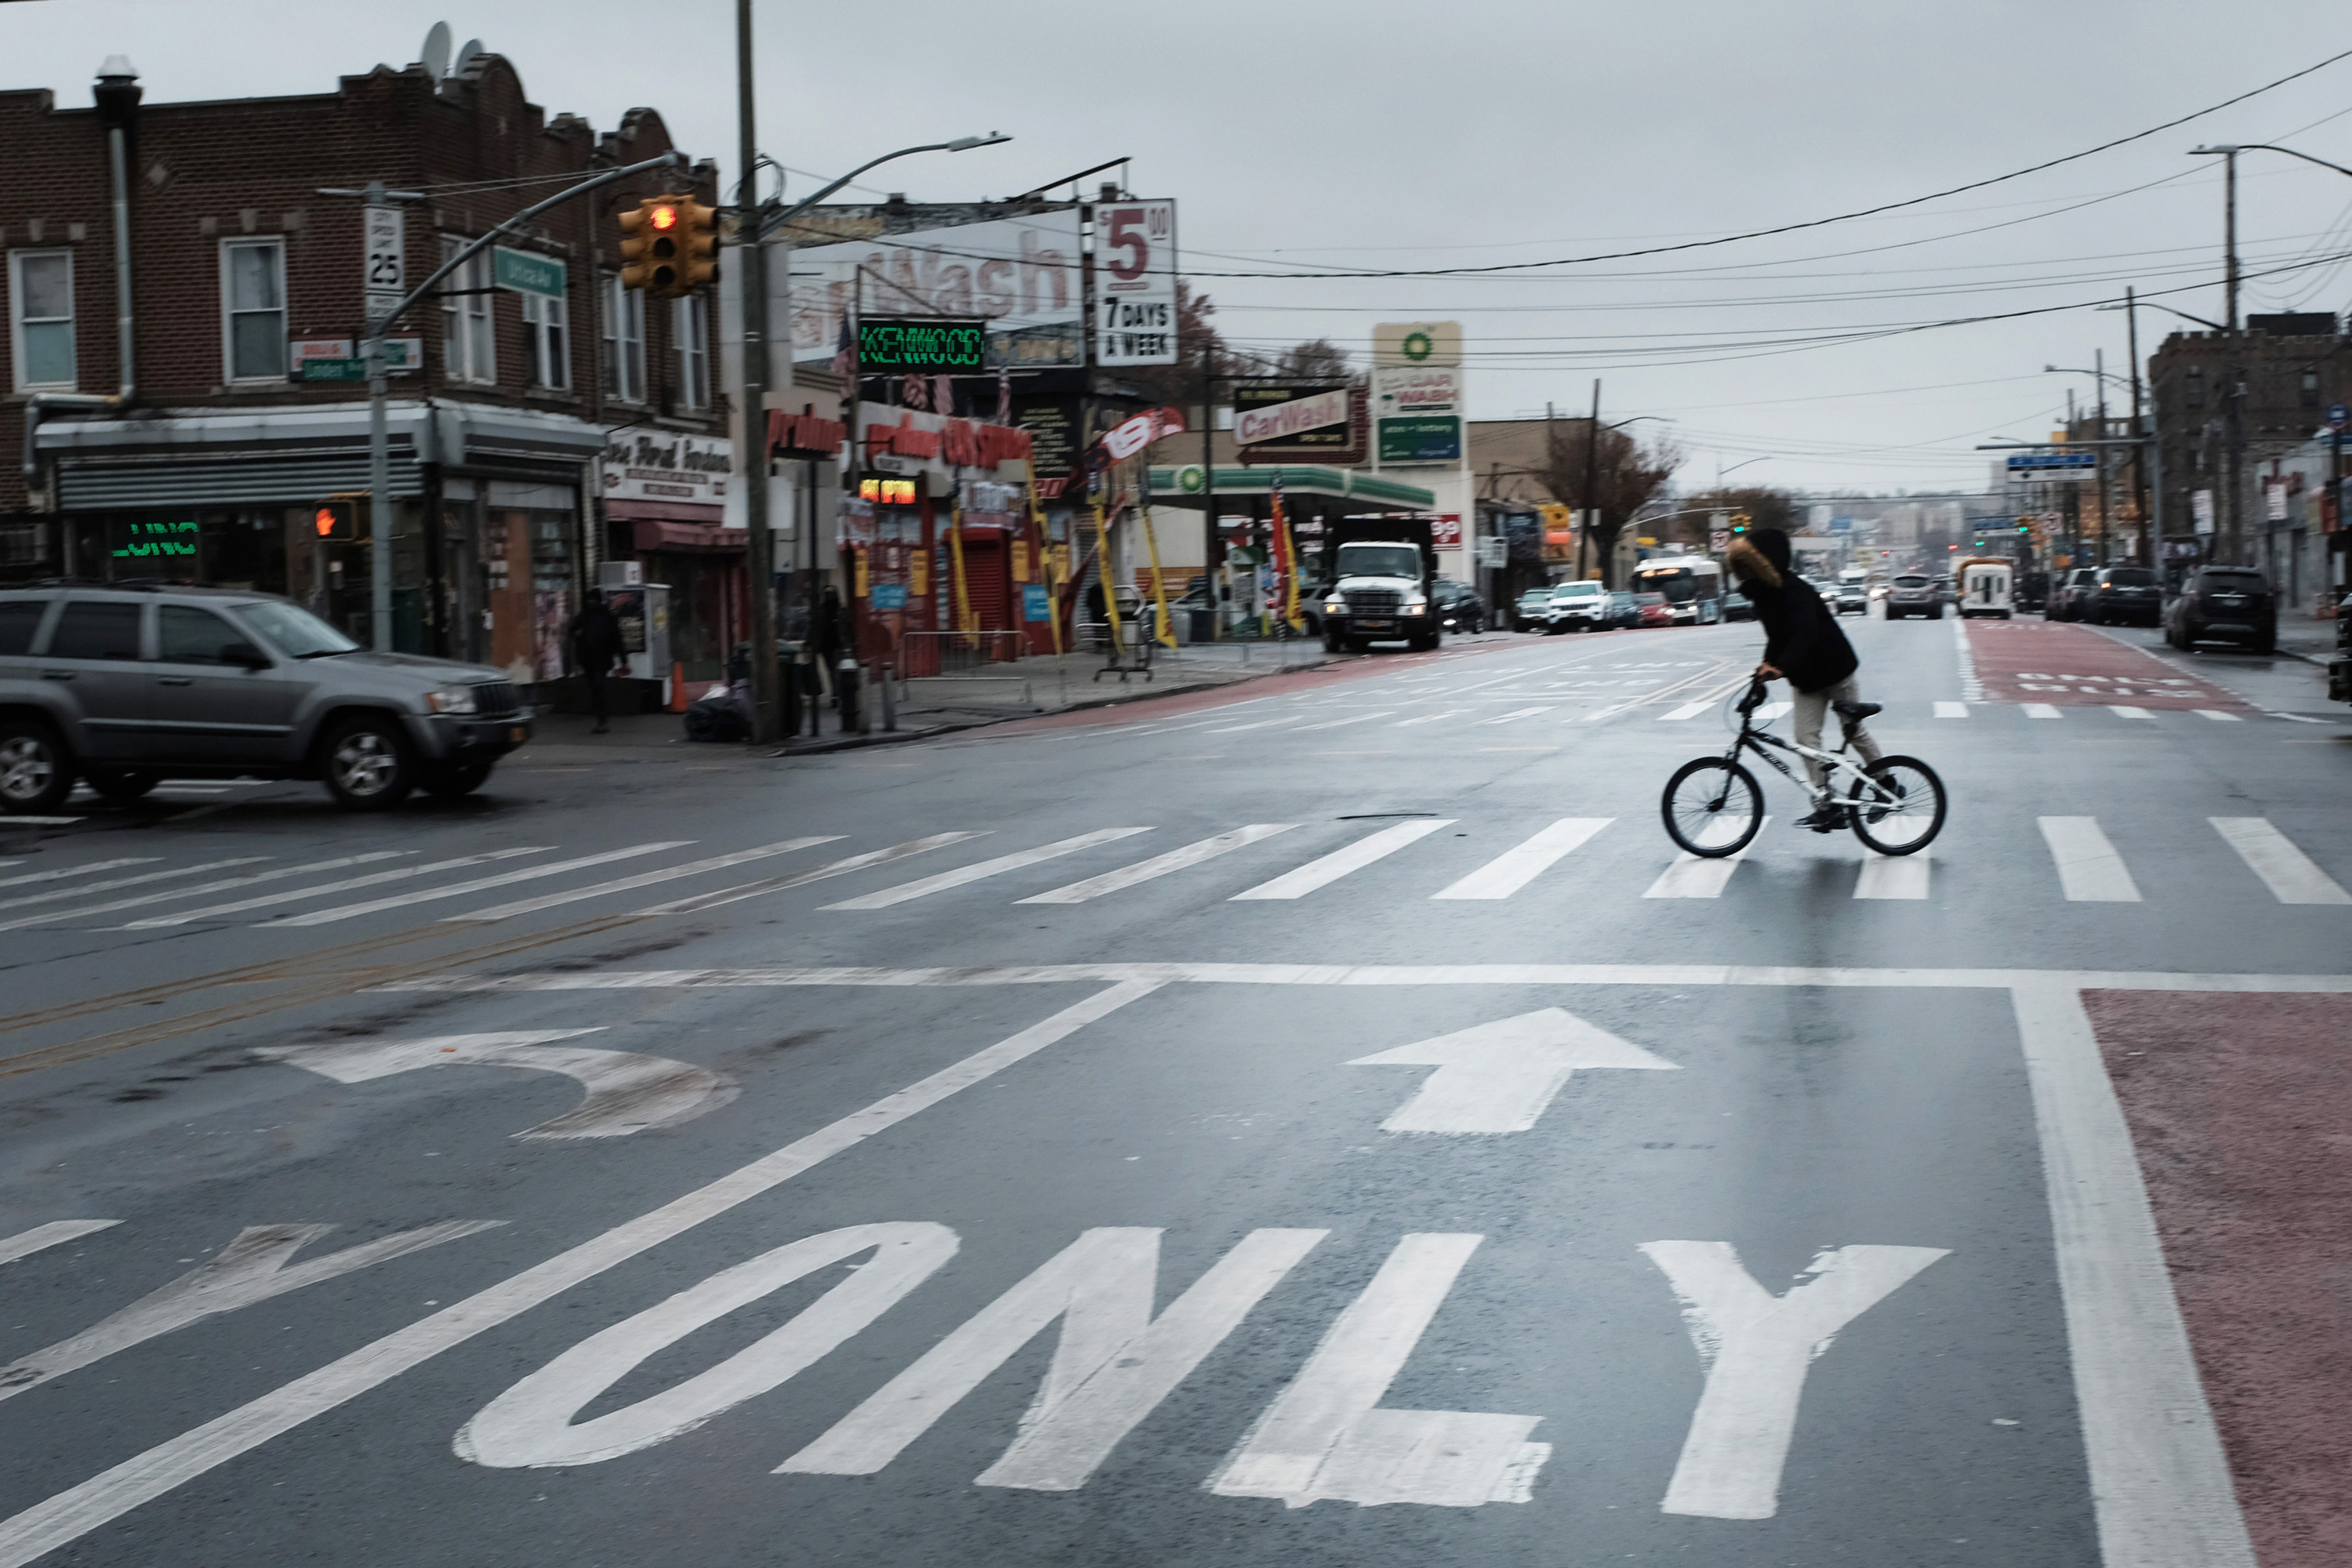 Most major metropolitan areas have become more racially segregated, study shows